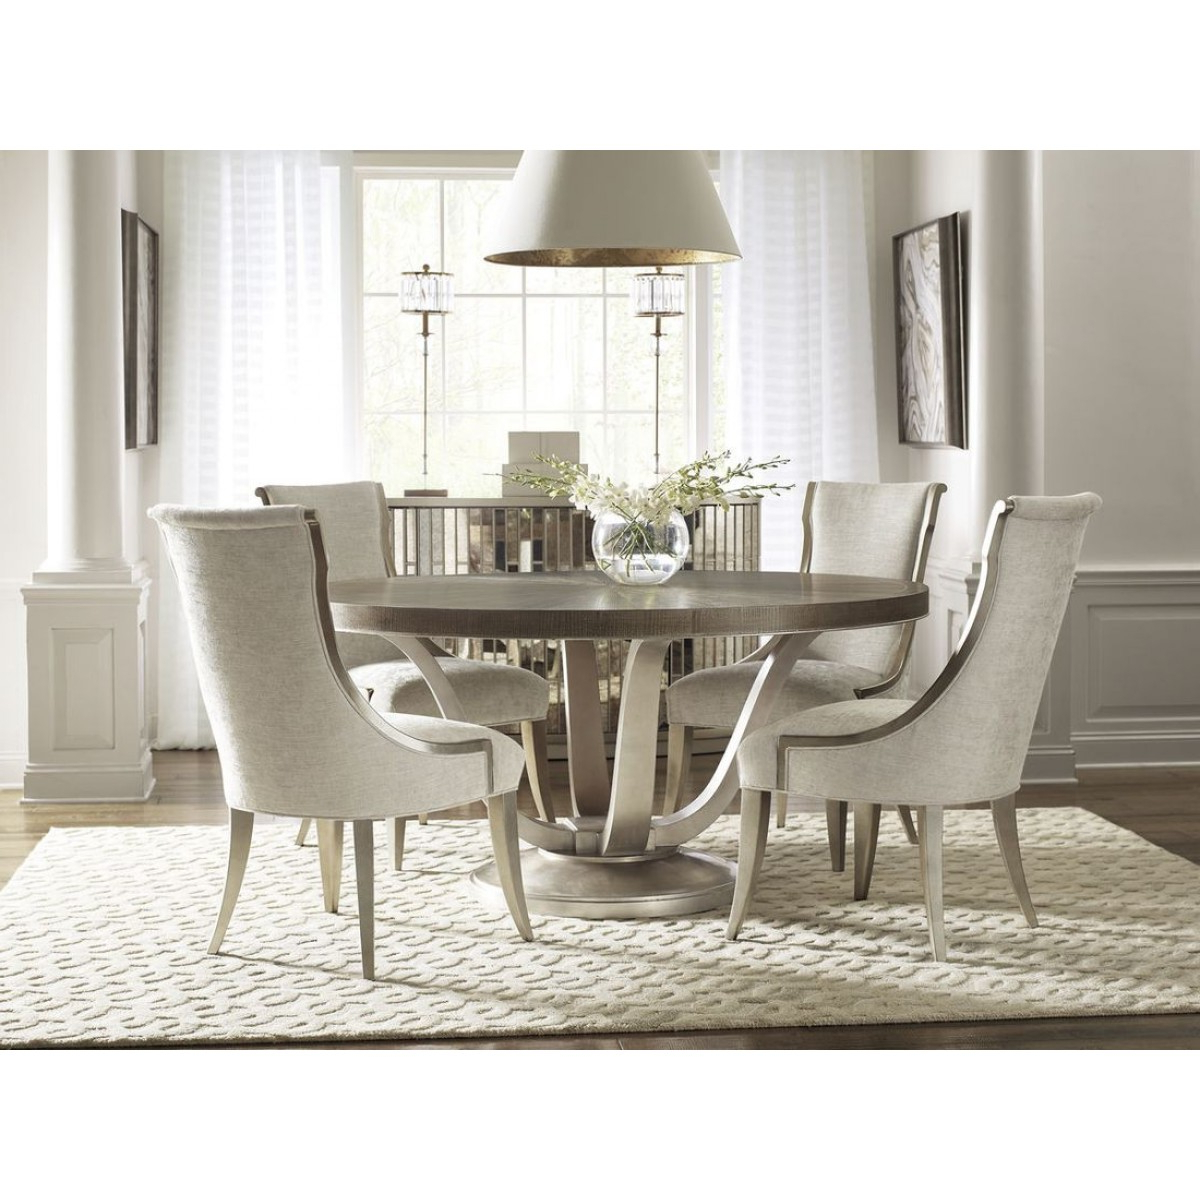 Famous Caracole Avondale 5Pc Round Dining Table Set Throughout Avondale Dining Tables (View 3 of 25)